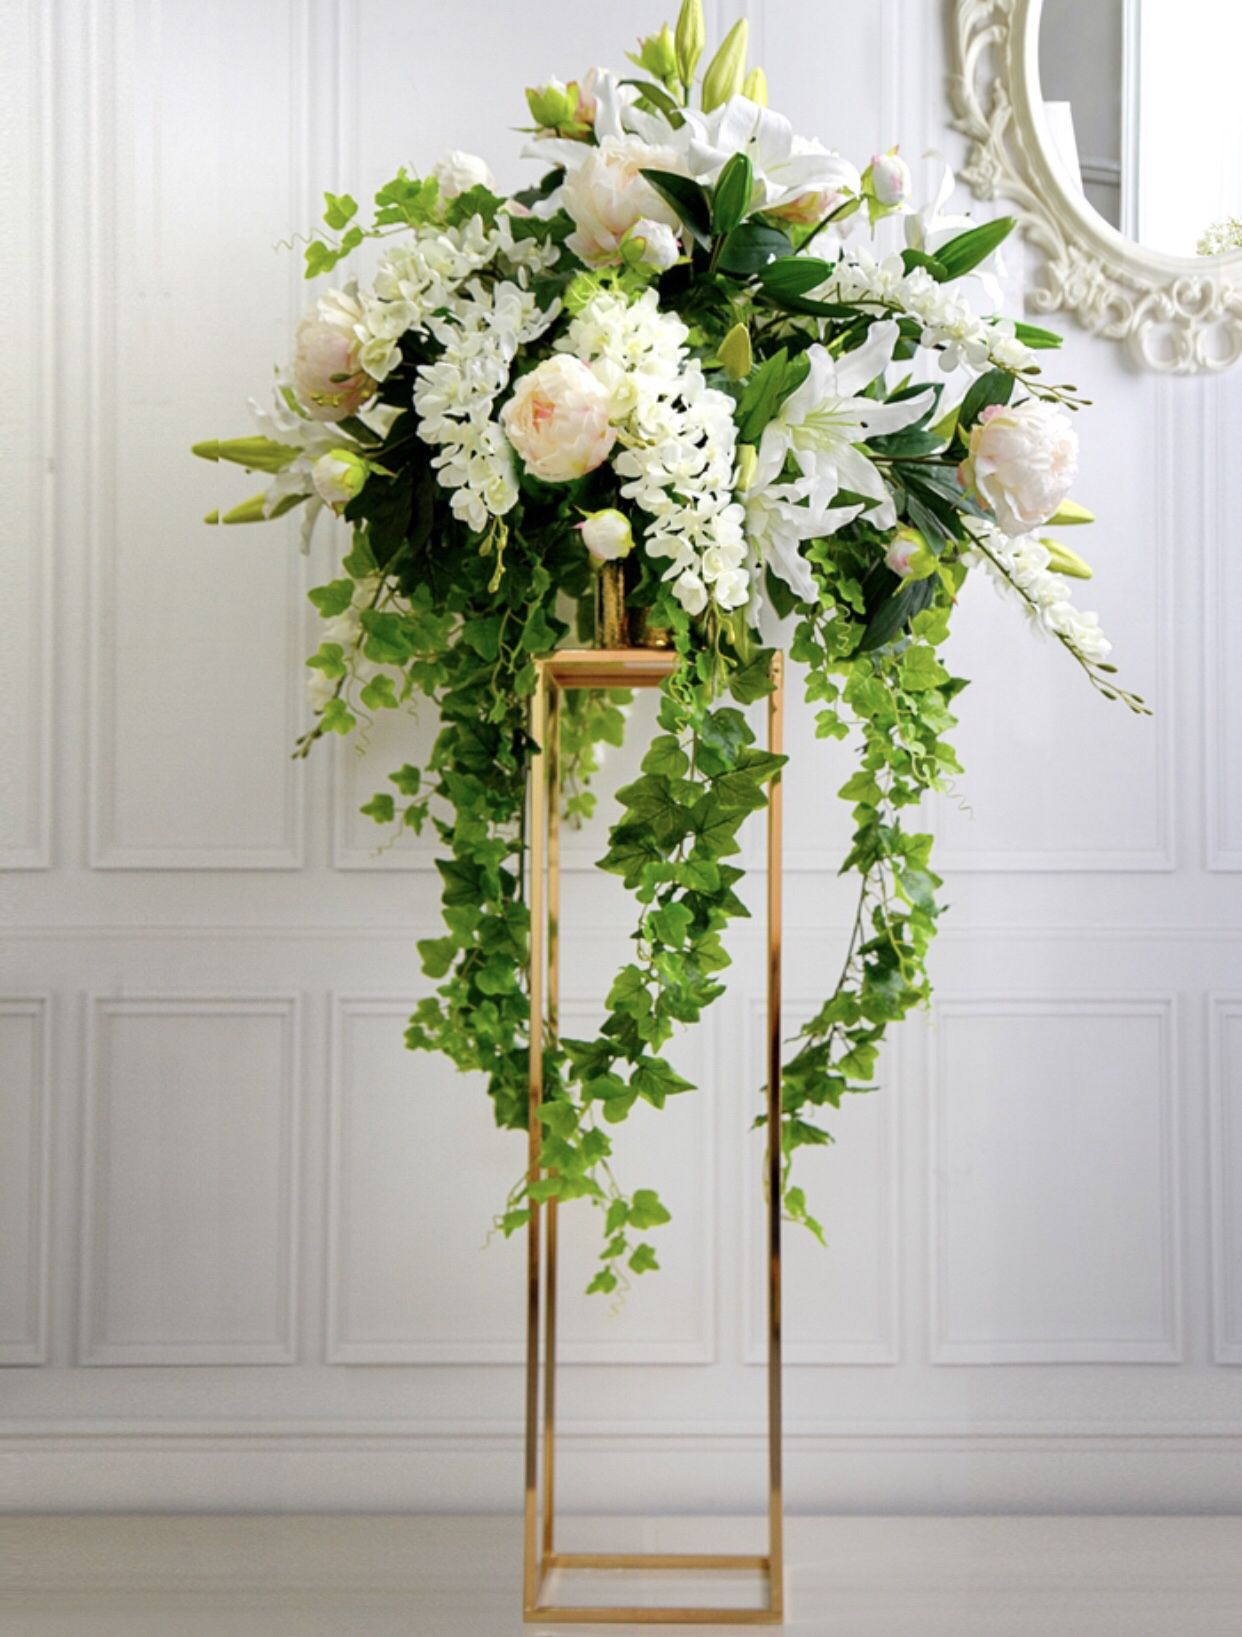 These tall gold flower stands make a striking centrepiece